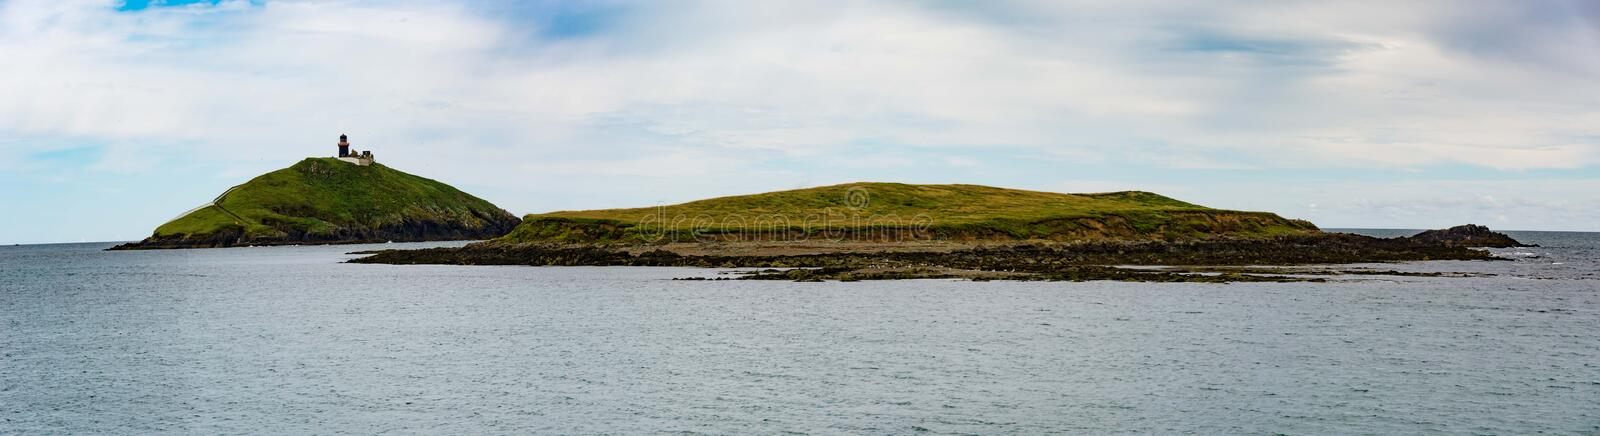 Ballycotton Light House & Island royalty free stock photos